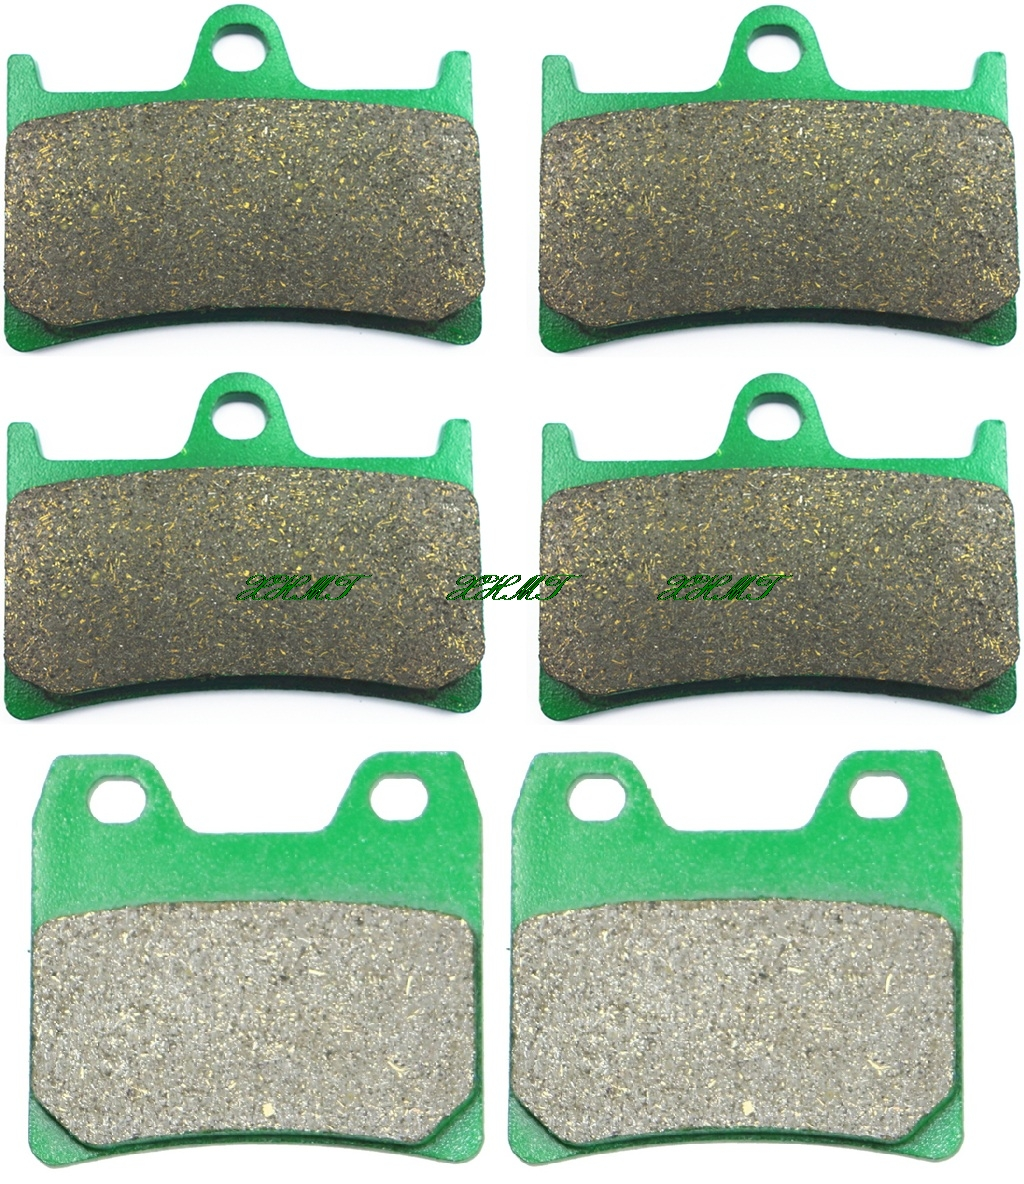 Brake Pads Set for YAMAHA FZS1000 FZS 1000 FAZER 2001 2002 2003 2004 2005 / XJR1300 XJR 1300 2001 & up mfs motor motorcycle part front rear brake discs rotor for yamaha yzf r6 2003 2004 2005 yzfr6 03 04 05 gold